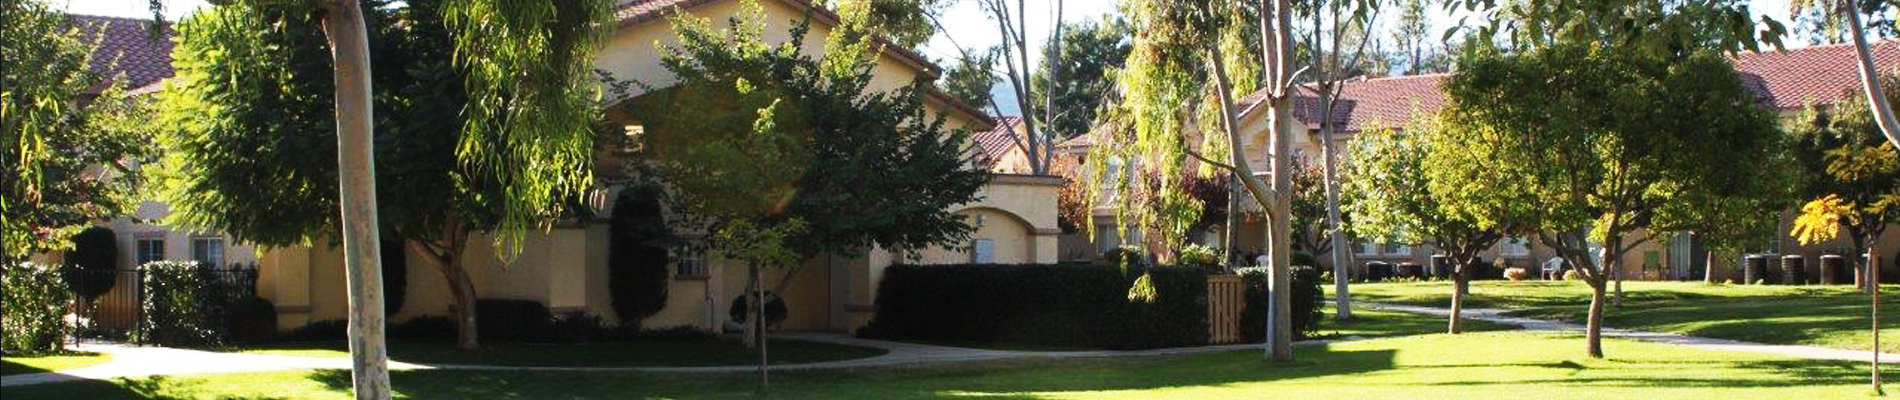 Independent Senior Living Community in Temecula CA